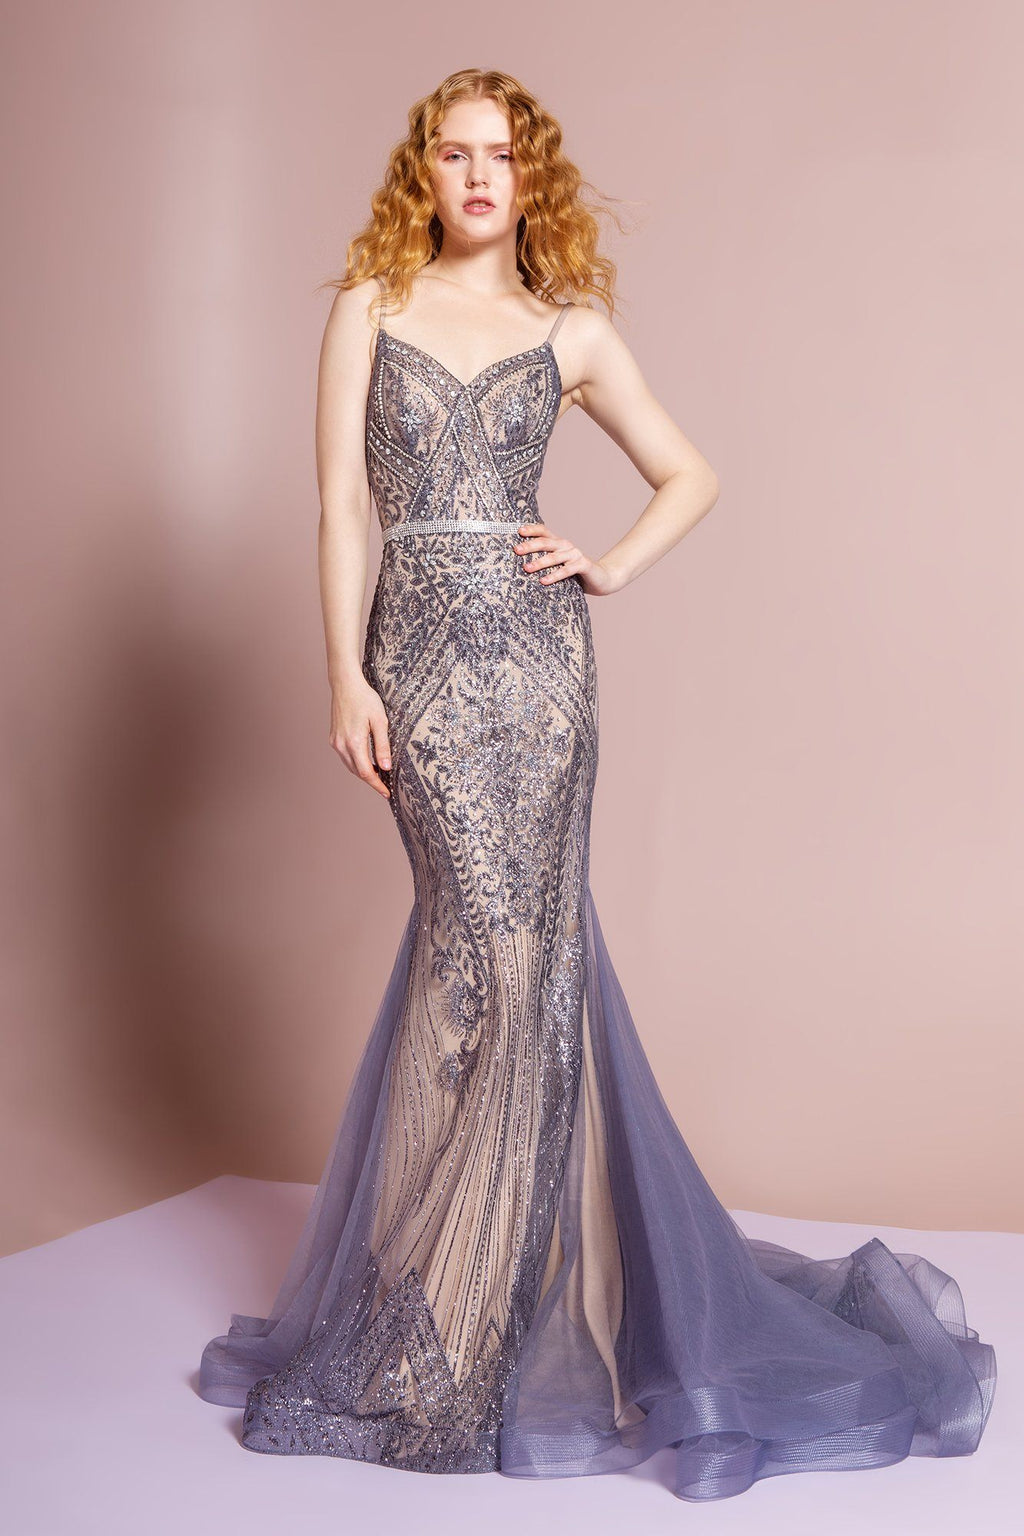 Extravagant mermaid pageant dress gls 2679-Simply Fab Dress